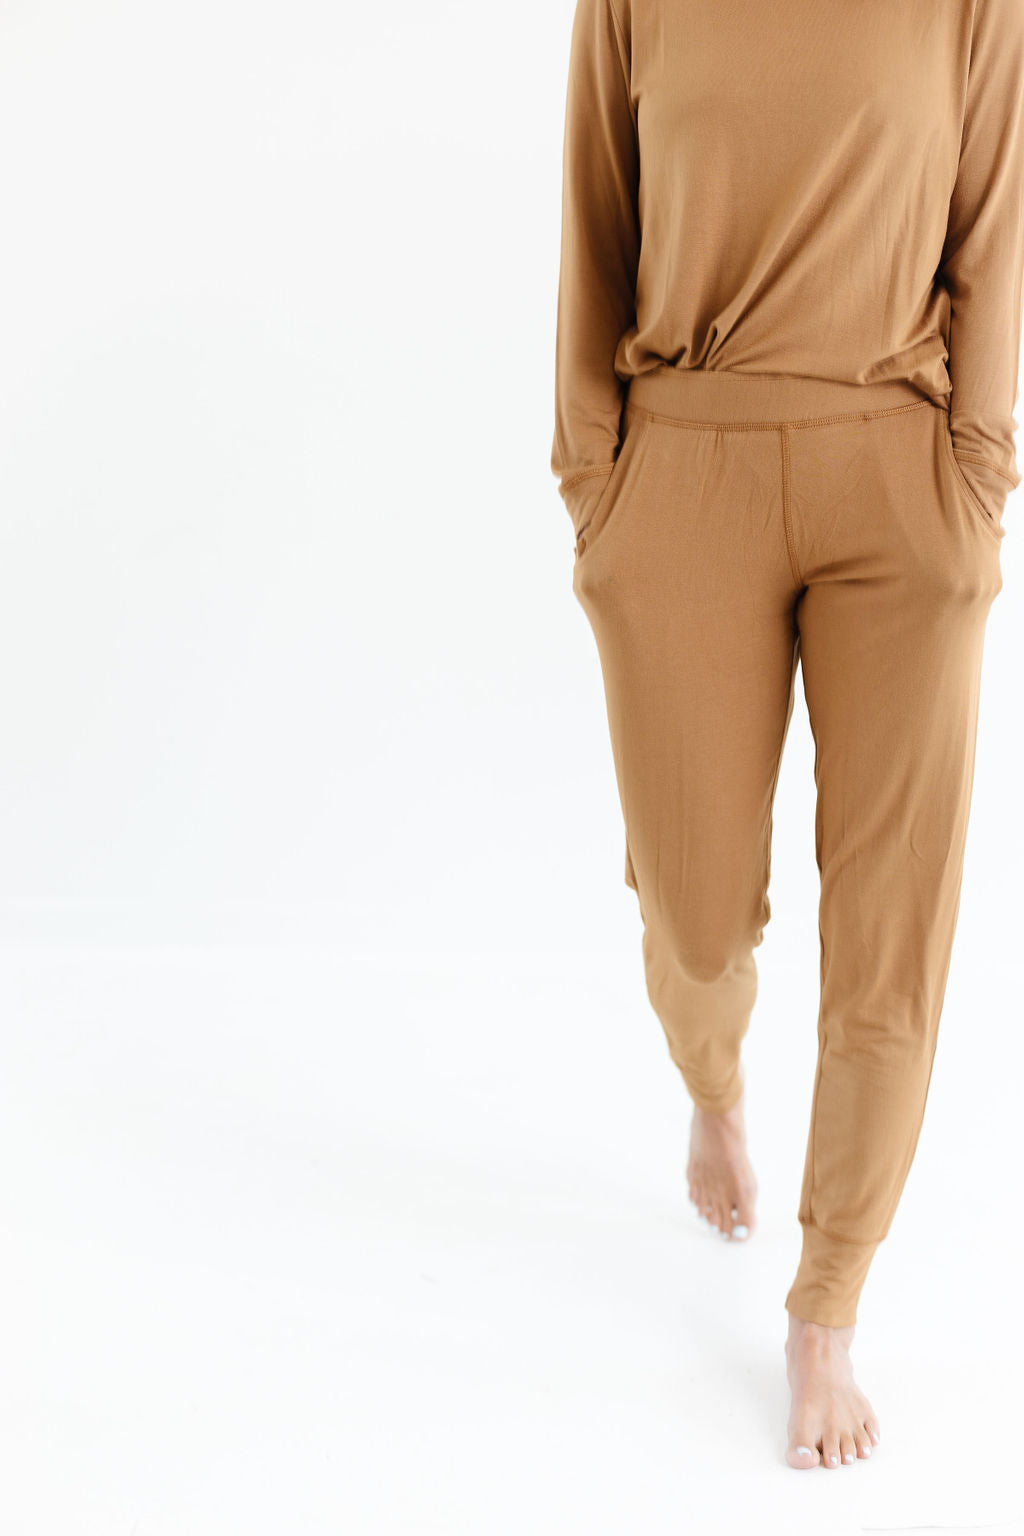 Long Sleeve Jogger Set in Camel